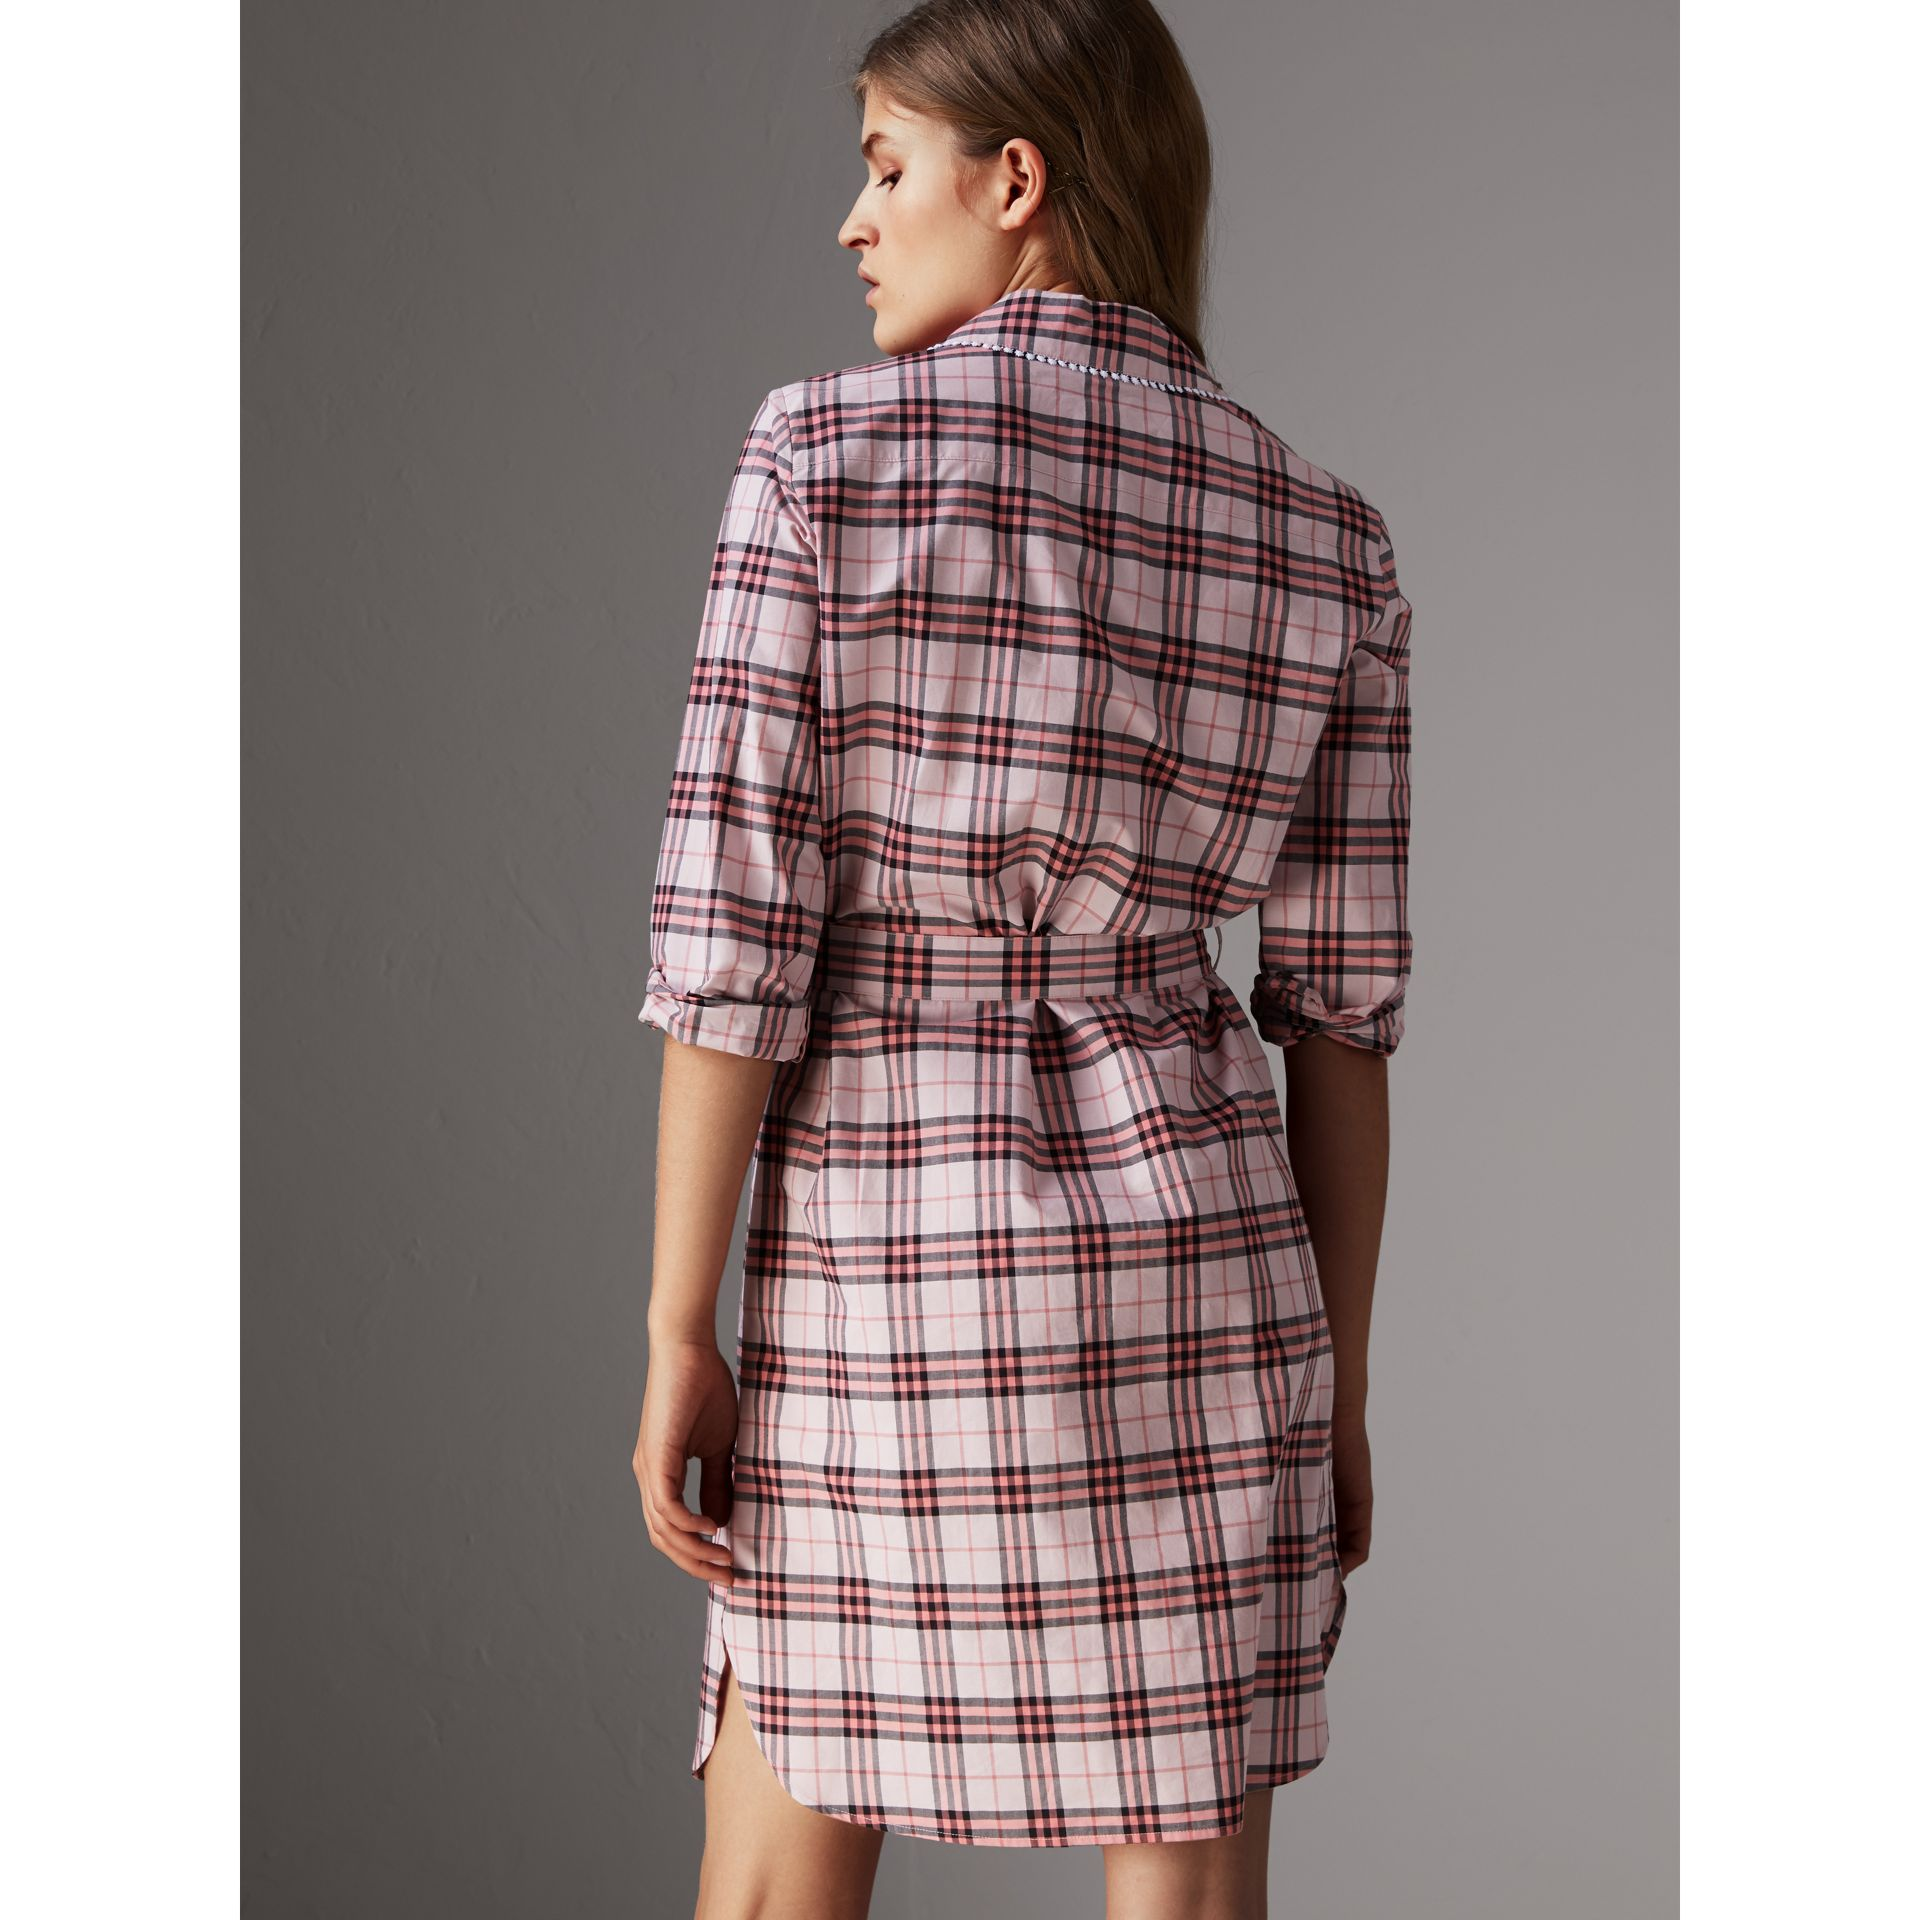 Lace Trim Collar Check Cotton Shirt Dress in Pink Azalea - Women | Burberry United Kingdom - gallery image 2